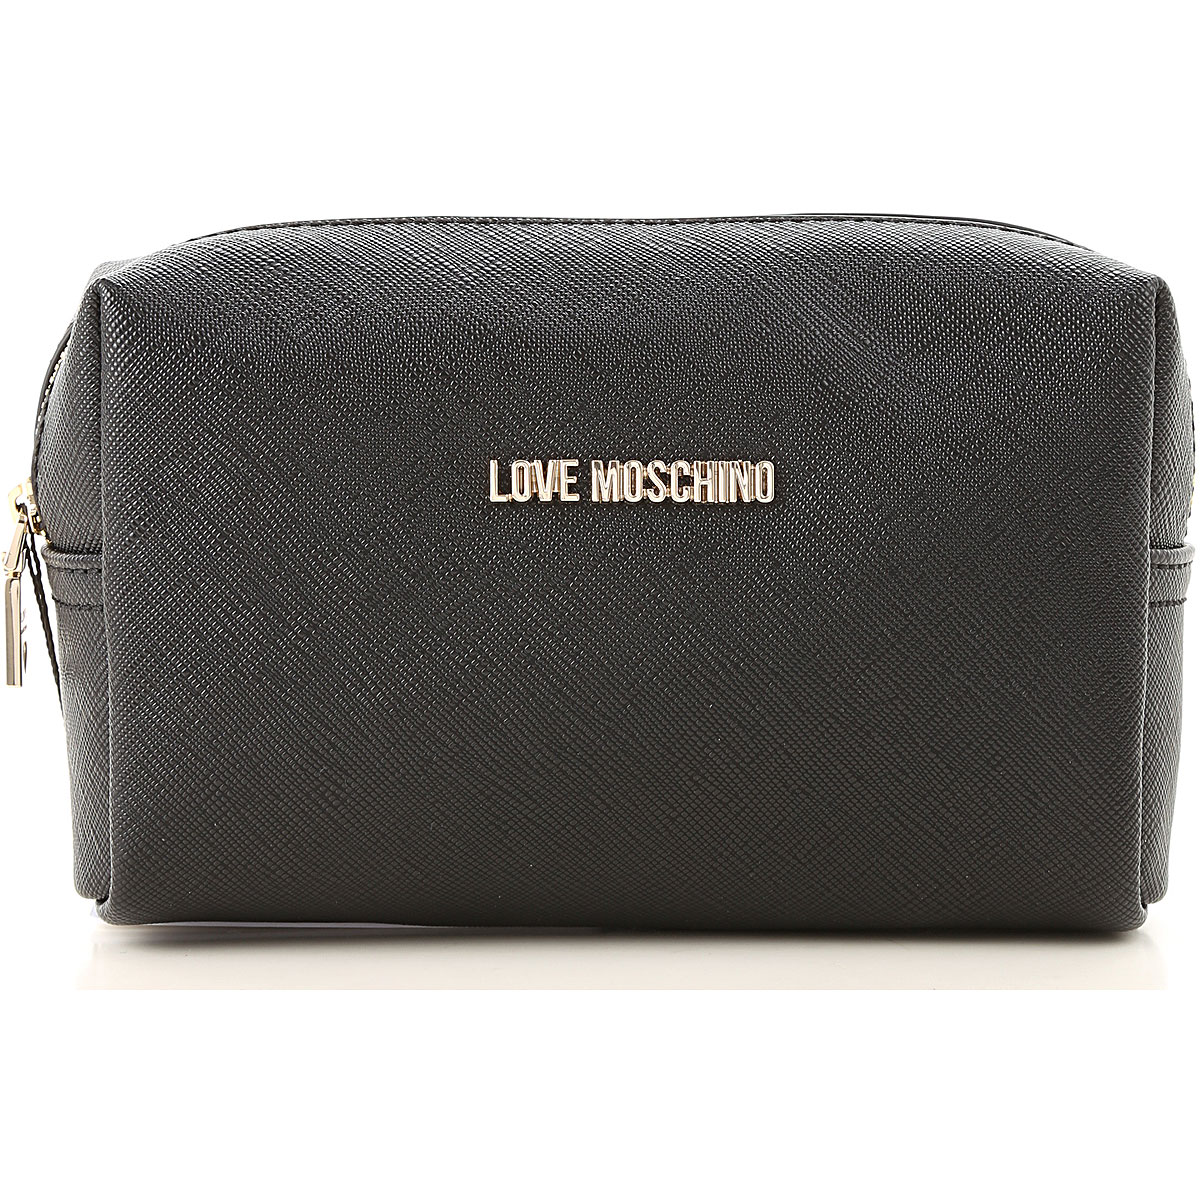 Image of Moschino Toiletry Bags, Black, polyurethane, 2017